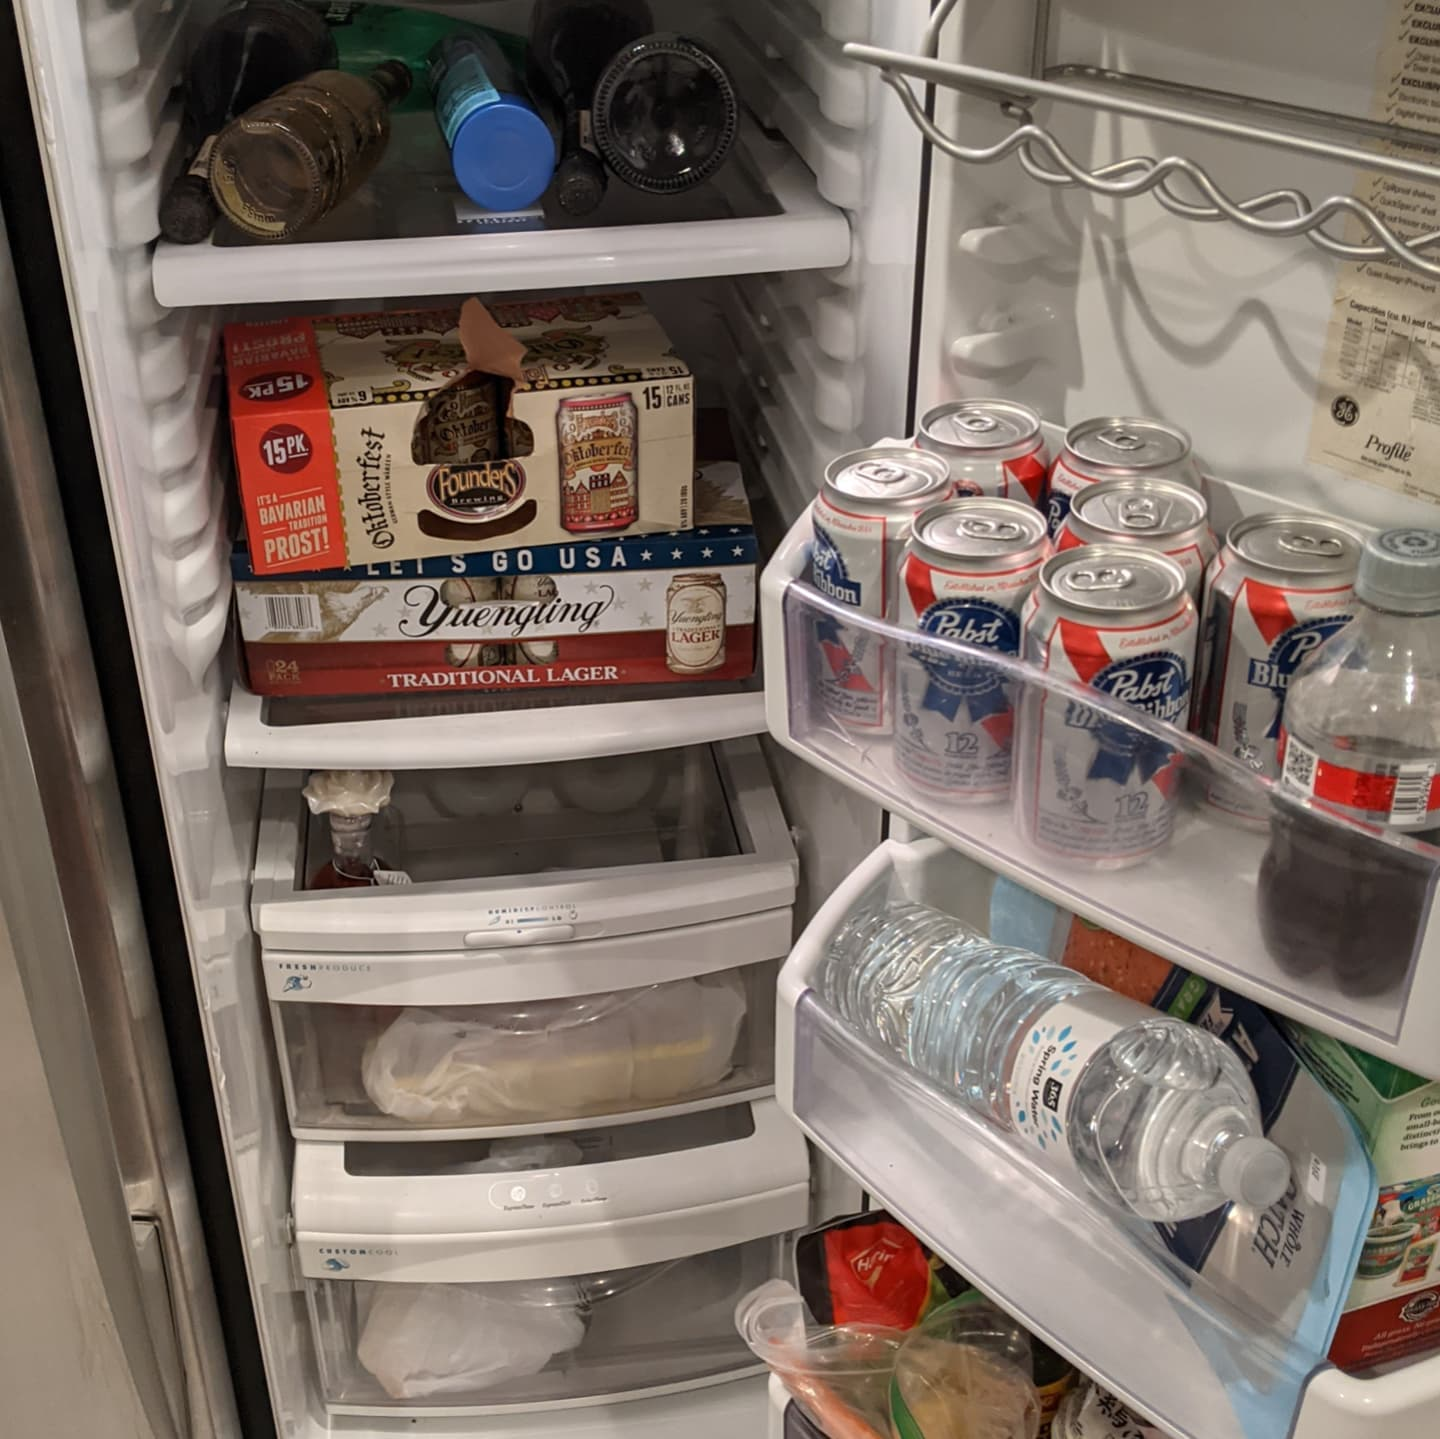 There's a theme emerging in this fridge #detroit #vacation #woodwarddreamcruise